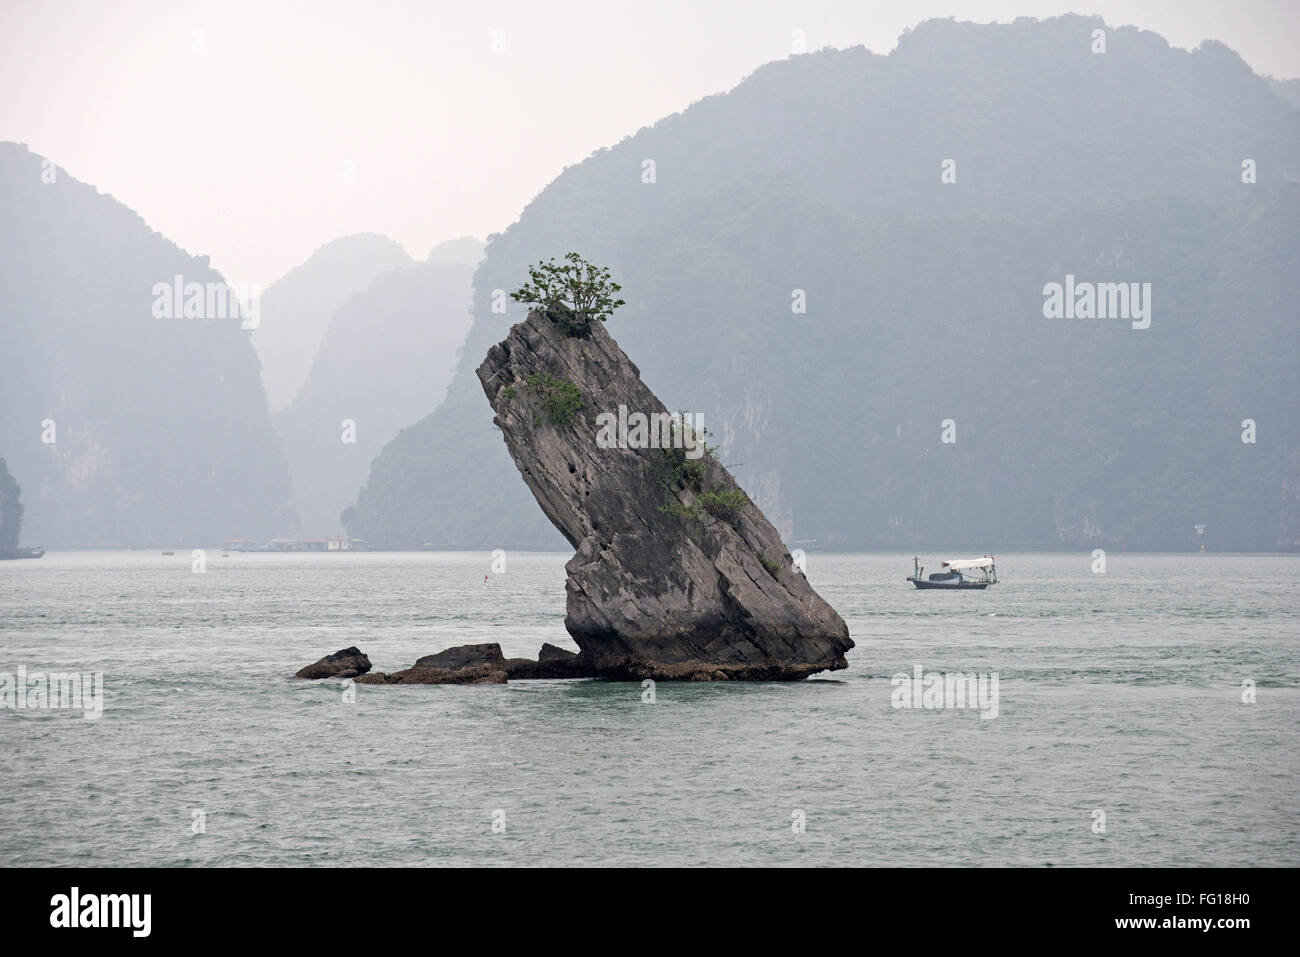 A small limestone karst, the remains of a much larger one after the island had eroded in Halong Bay. Stock Photo